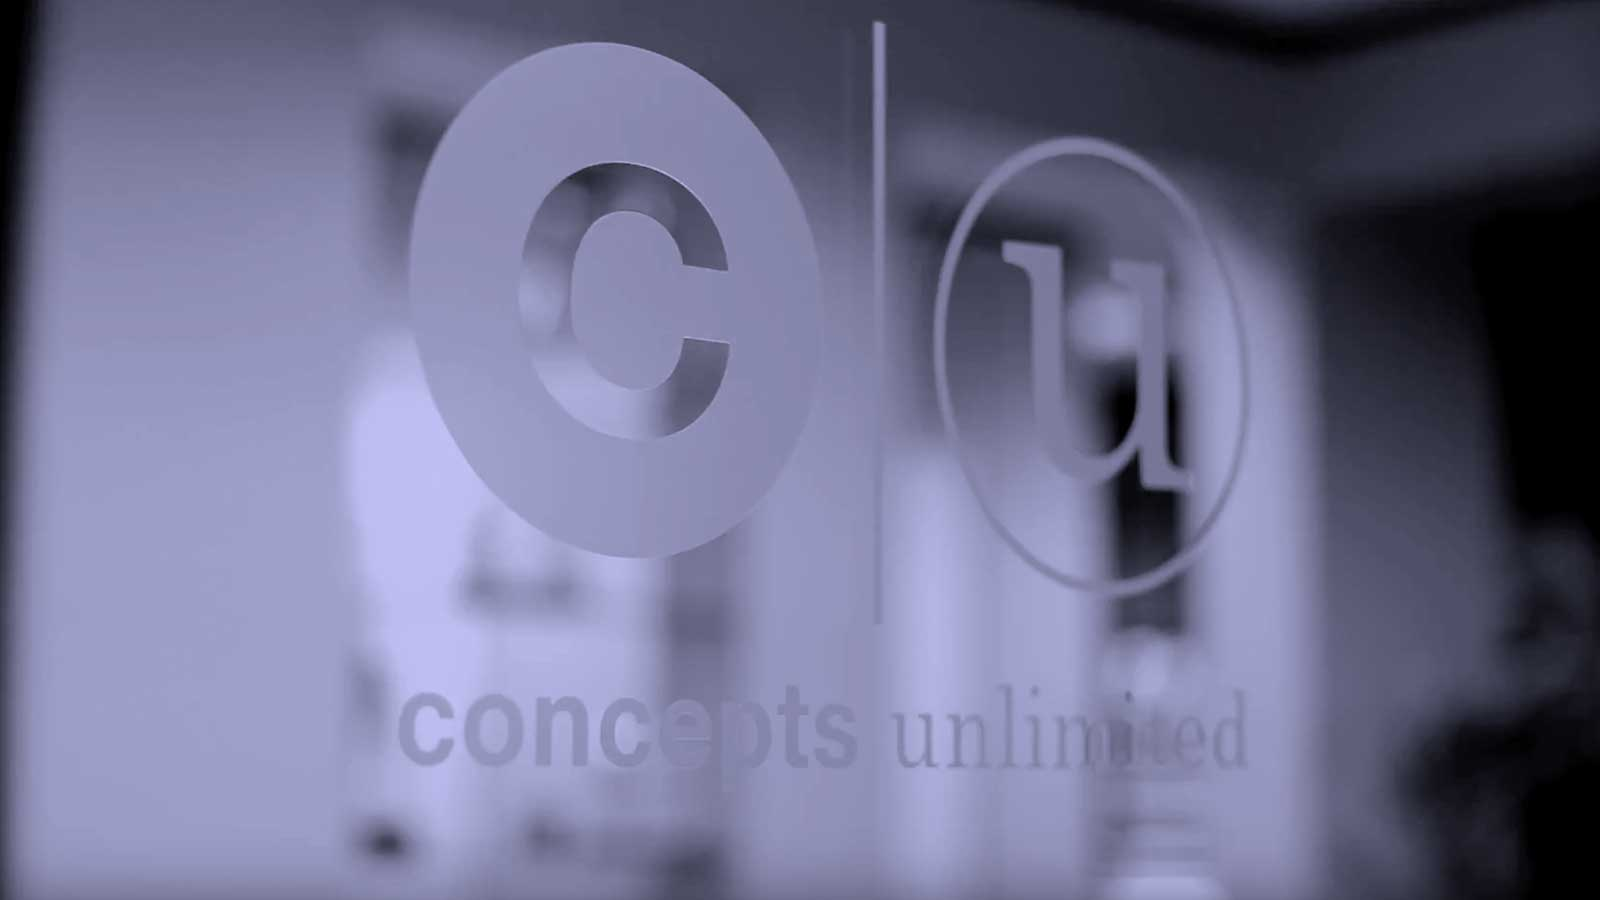 Concepts Unlimited Website Created And Managed By Kulture Digital